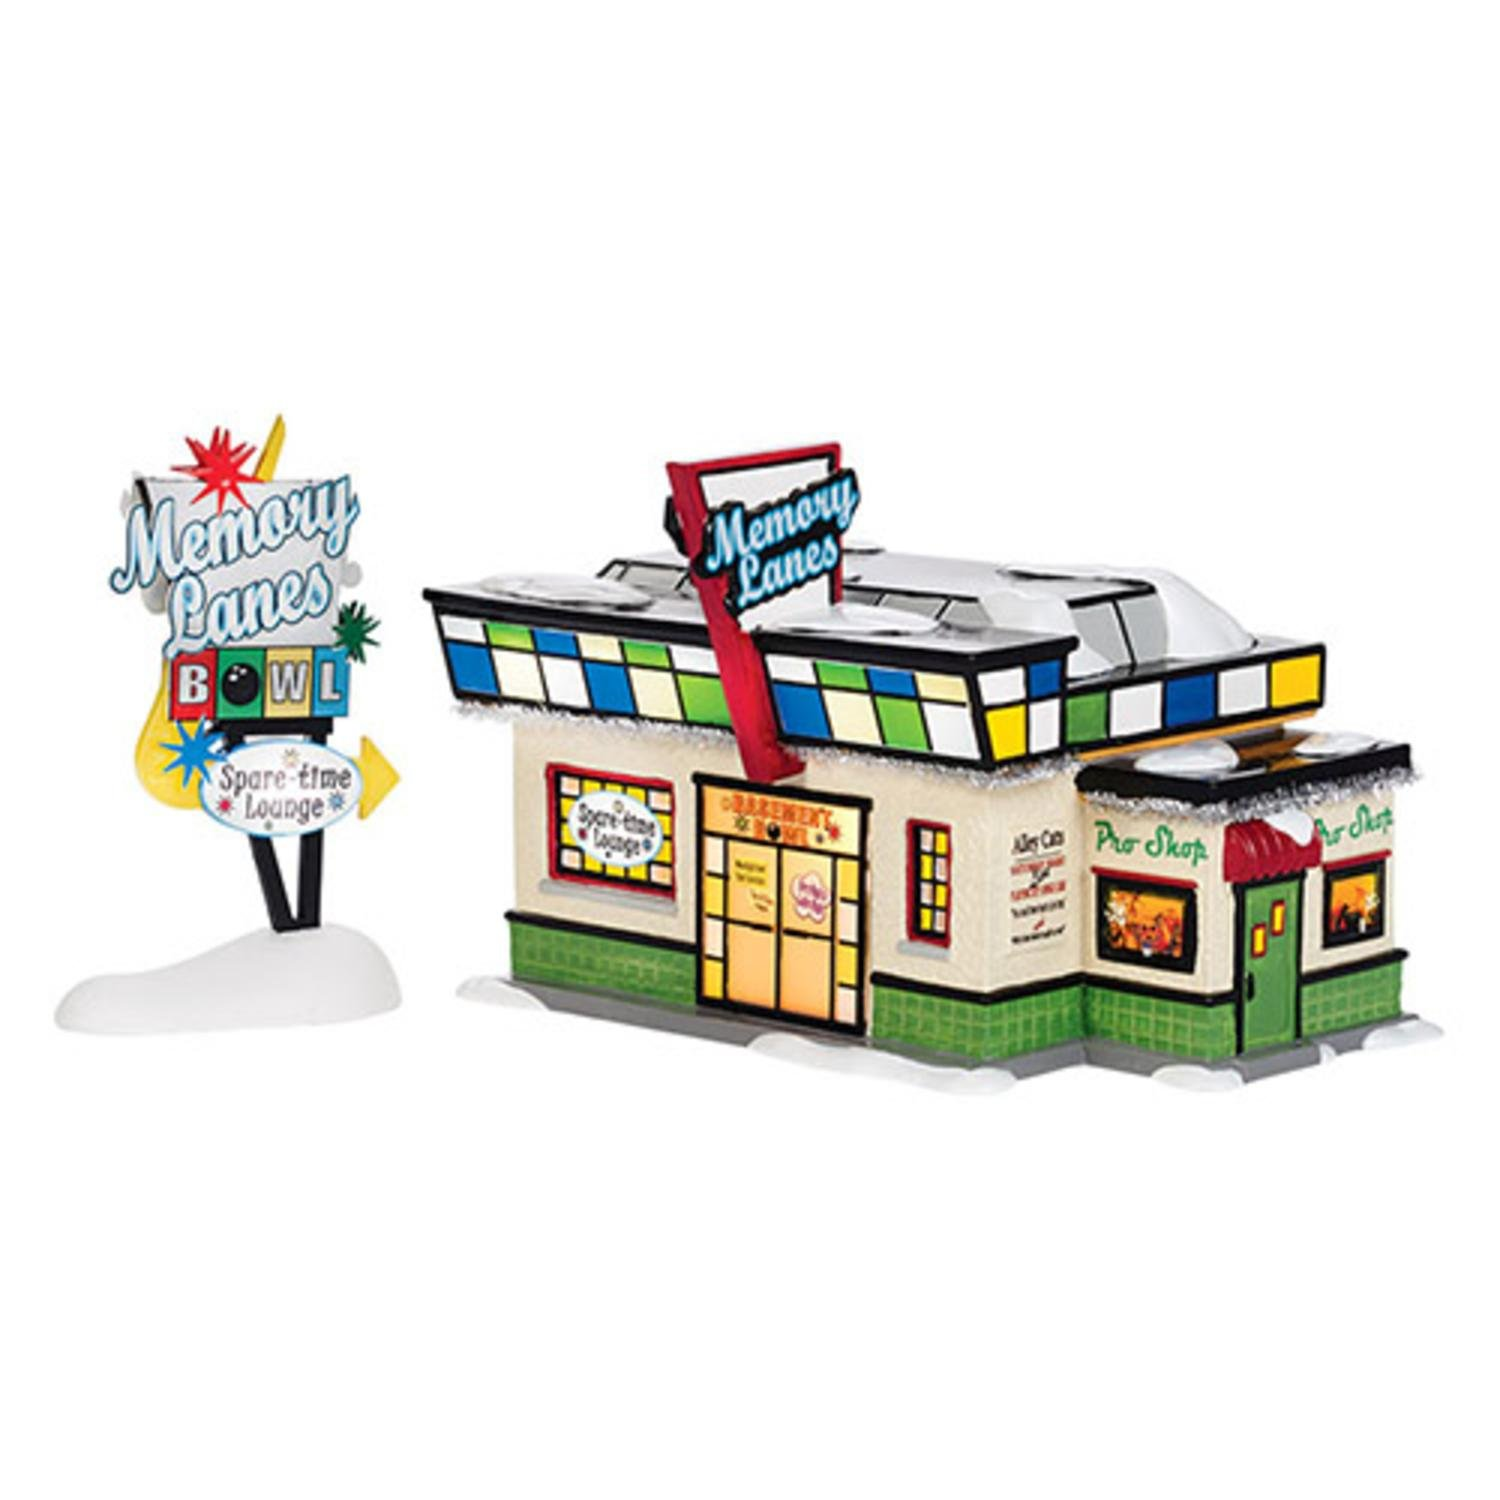 Department 56 Snow Village ''Memory Lanes Bowling'' Lighted Building Set #4036567